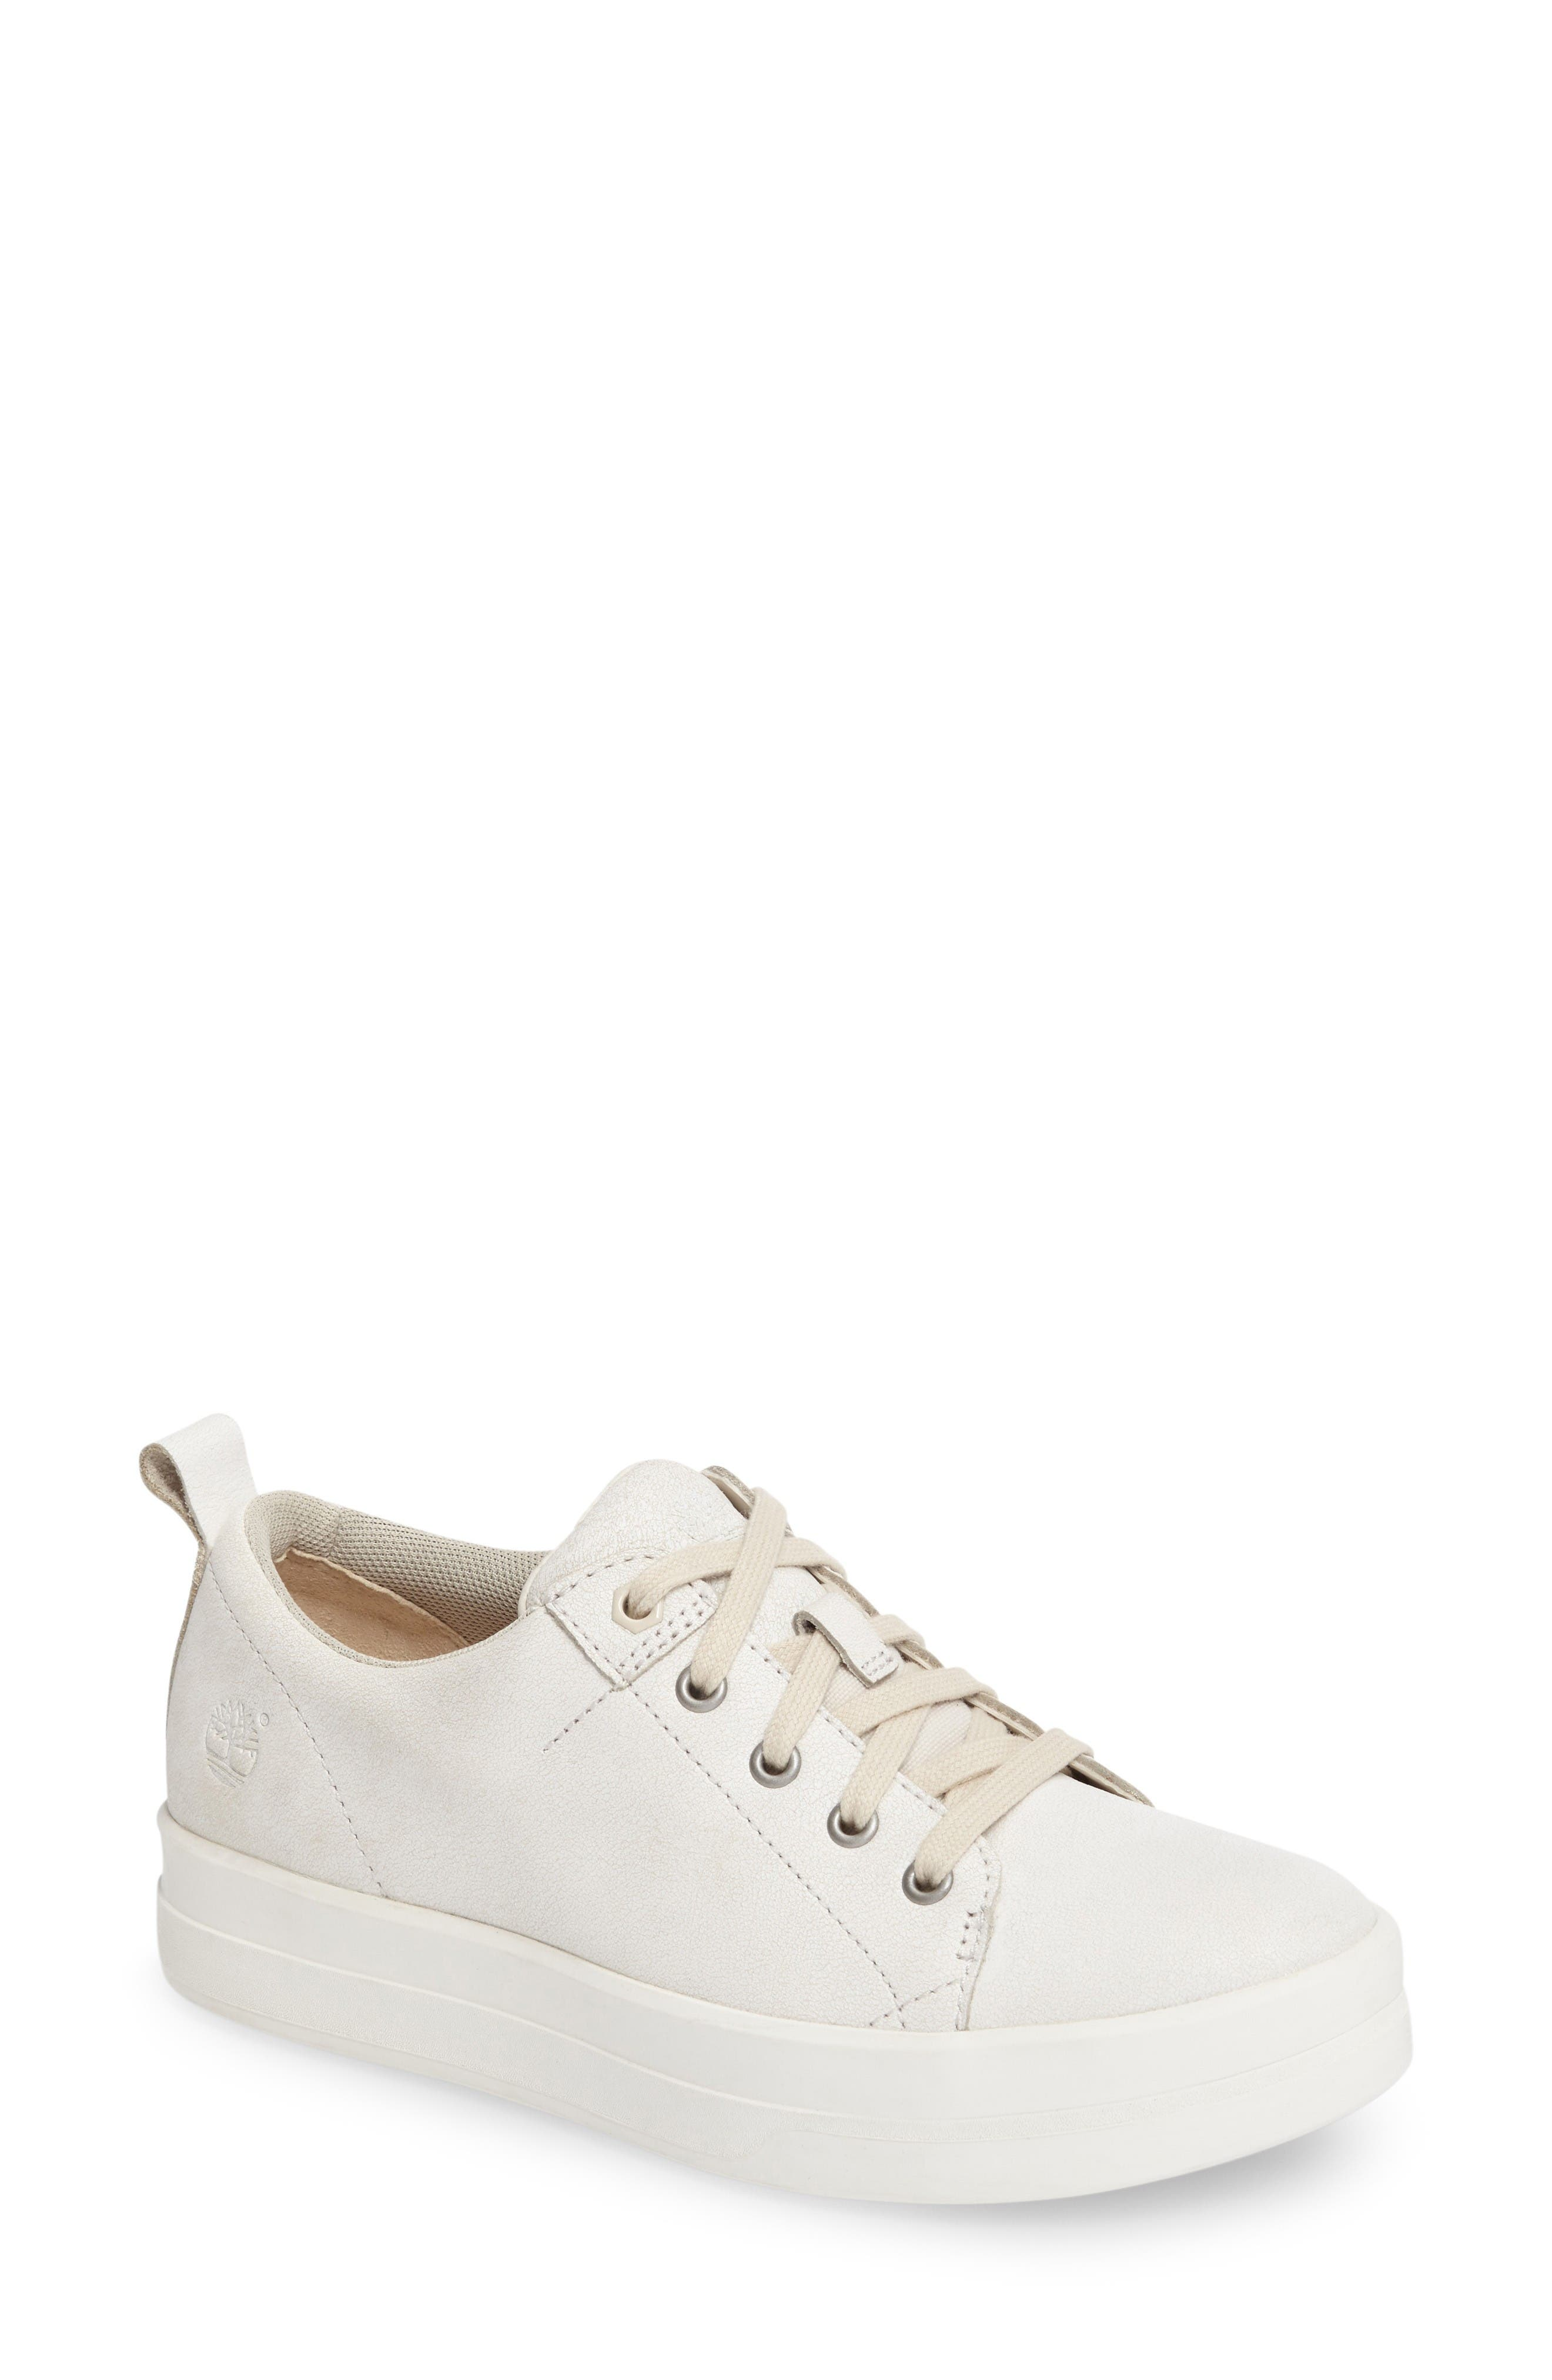 Alternate Image 1 Selected - Timberland Mayliss Oxford Sneaker (Women)